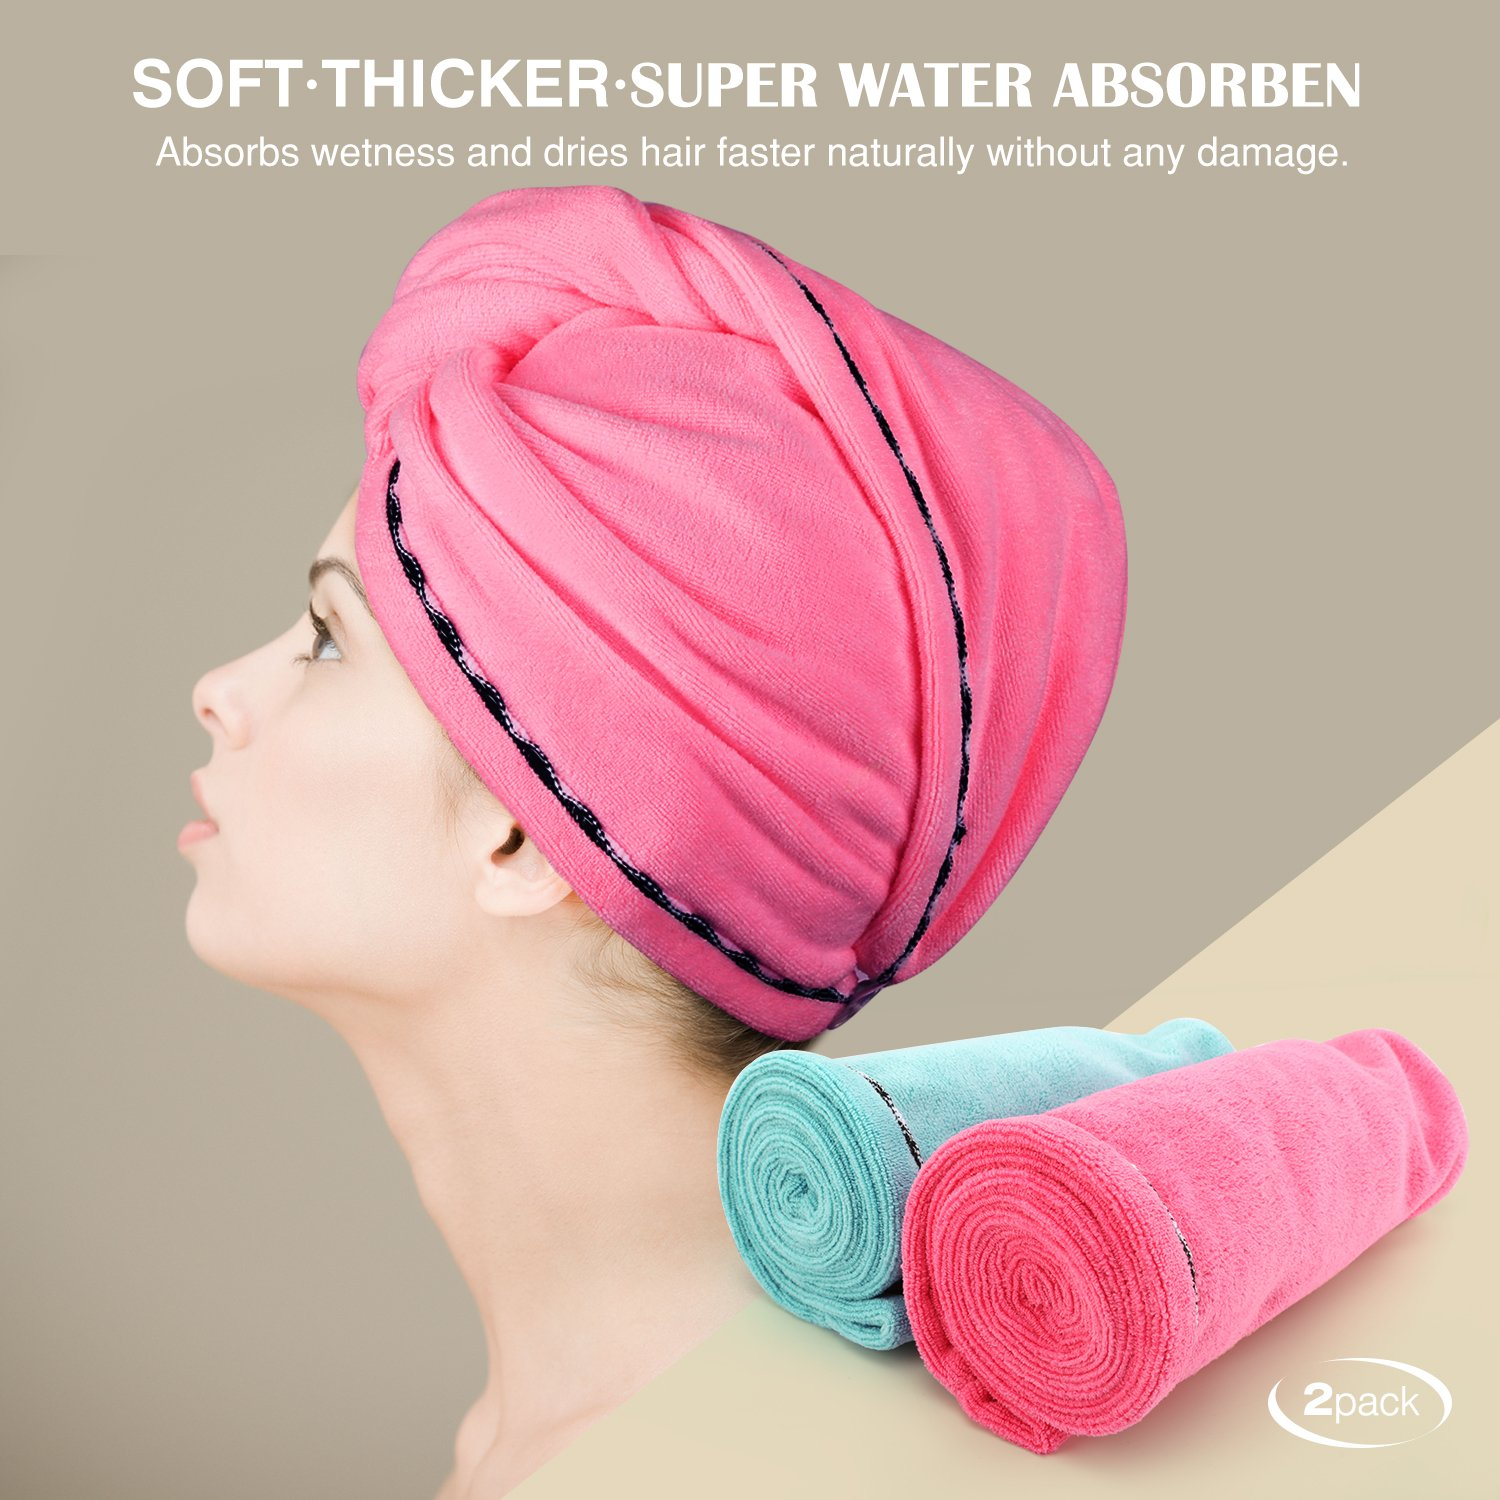 Luxspire 2 Pack Microfiber Hair Drying Towels, Fast Drying Hair Cap, Long Hair Wrap Turban, Bath Shower Head Towel with Buttons, Super Water-absorbent, Blue & Rose Red by Luxspire (Image #2)